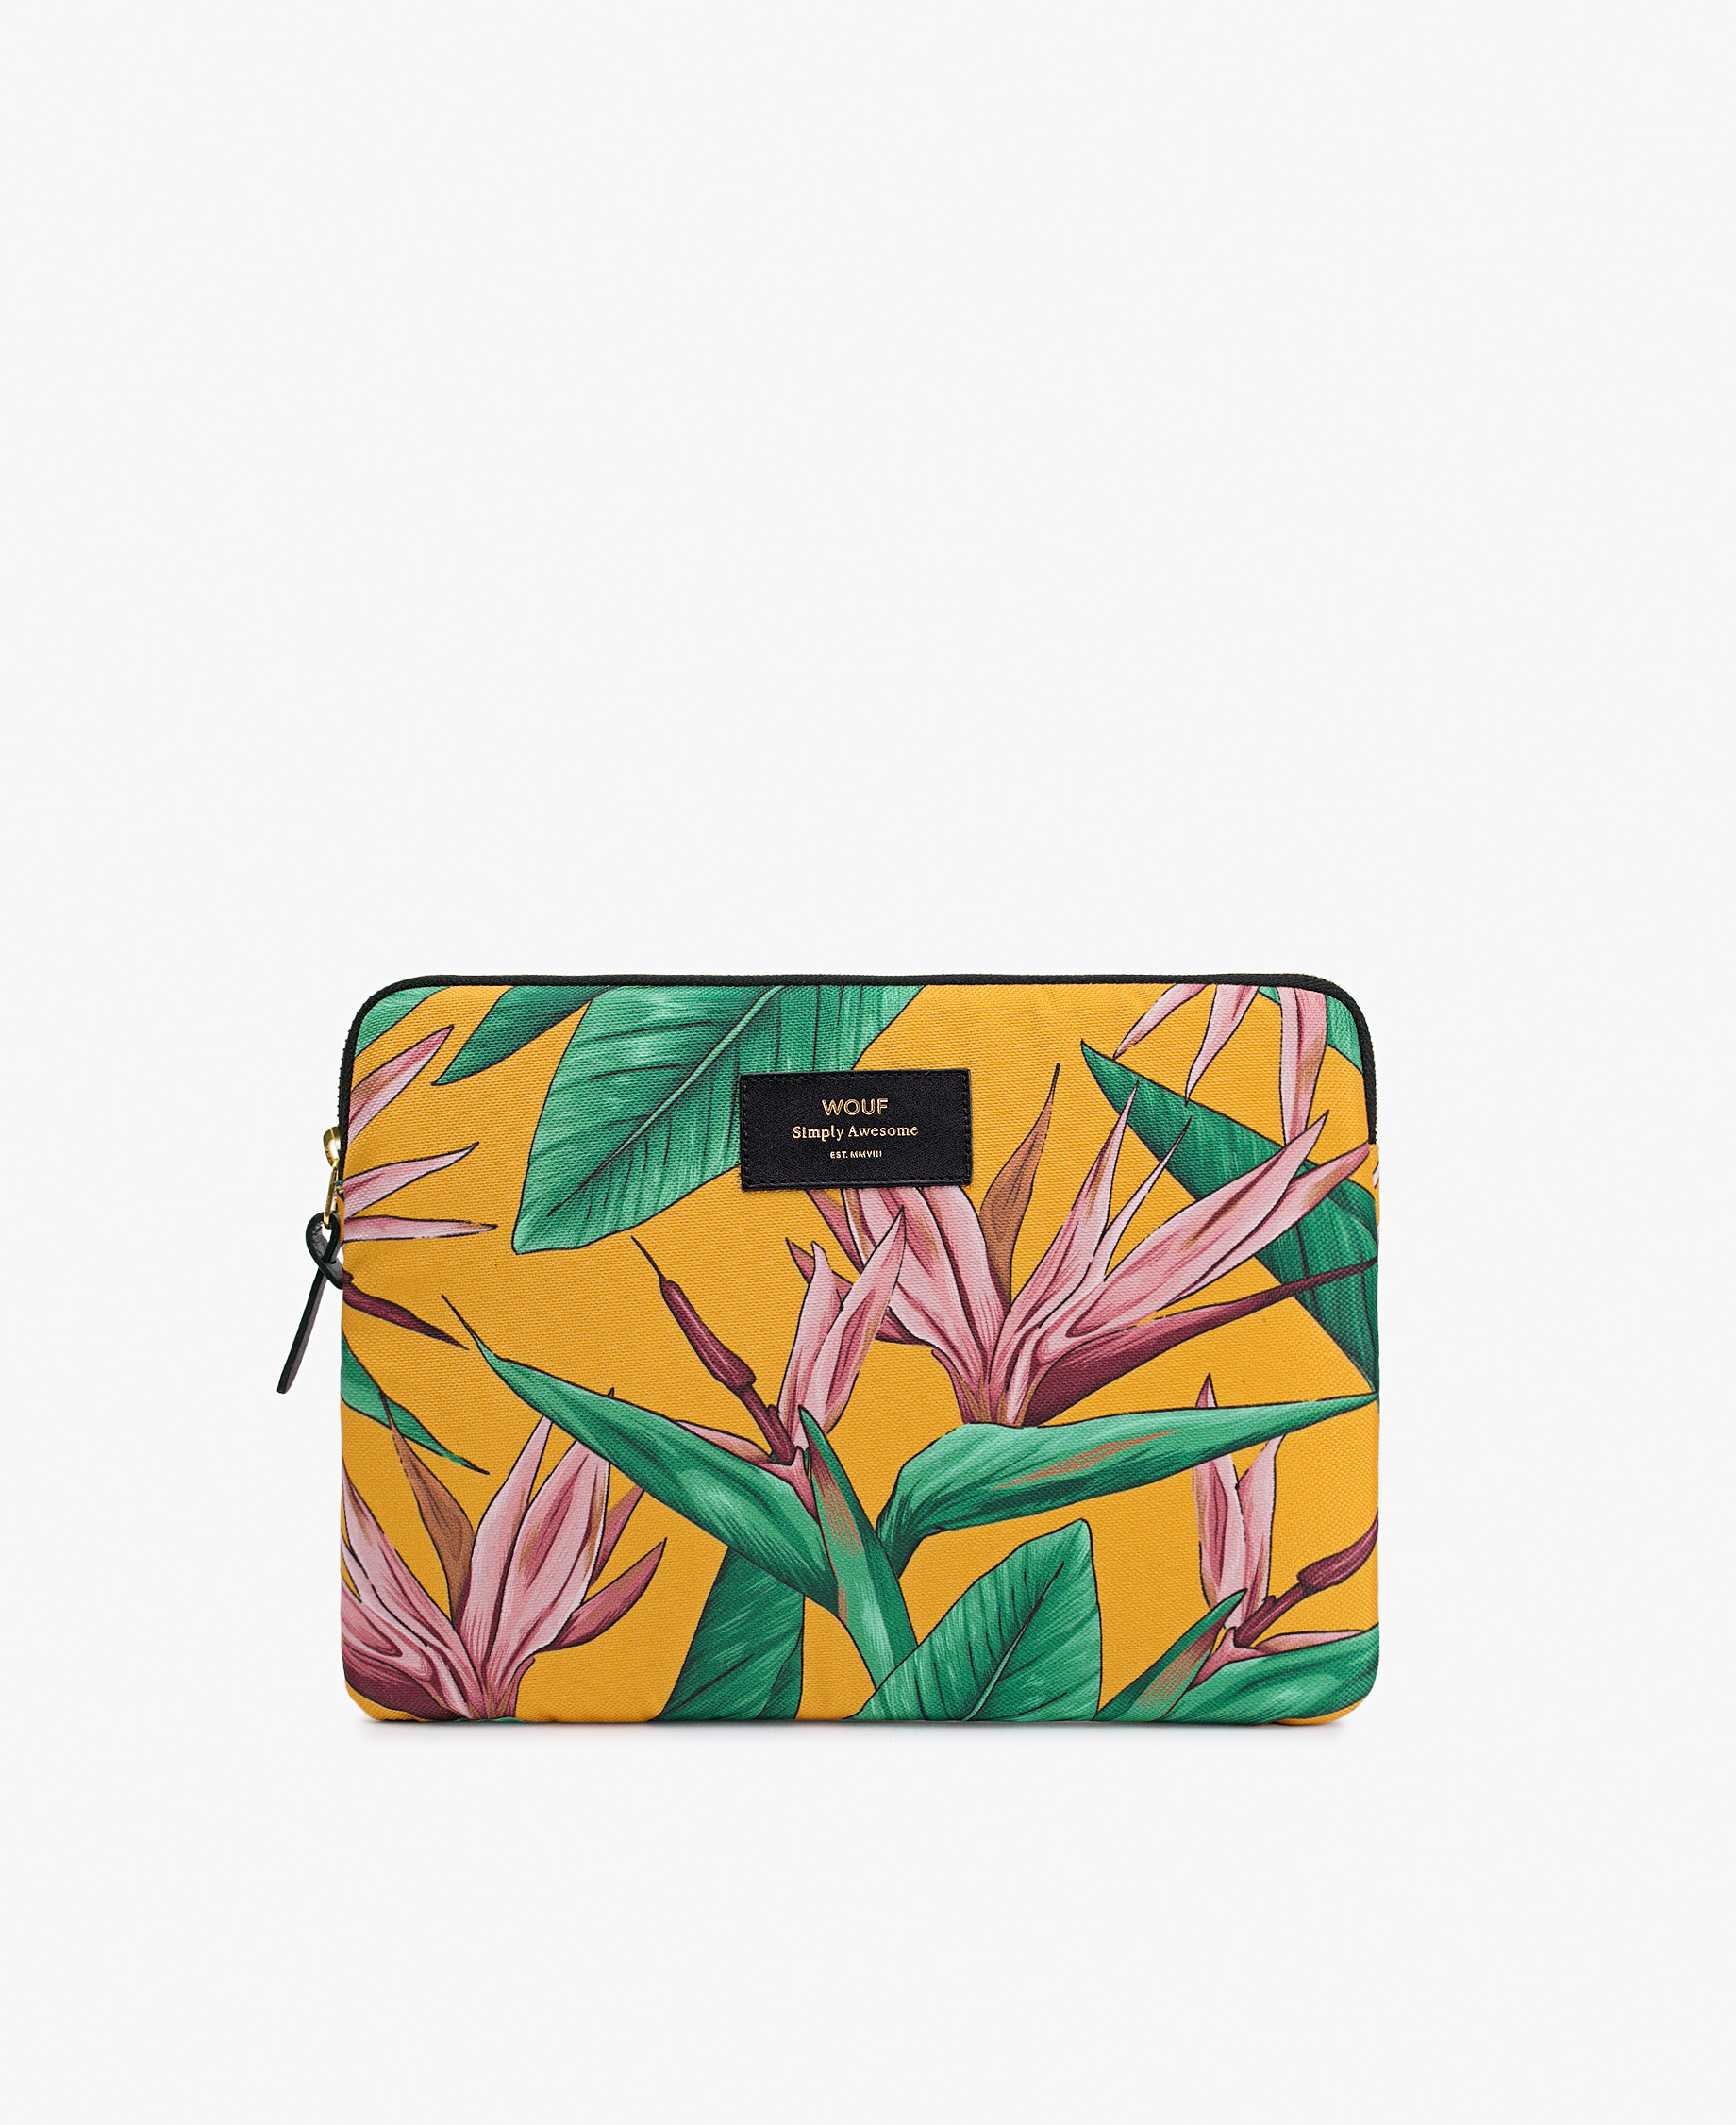 woman iPad case